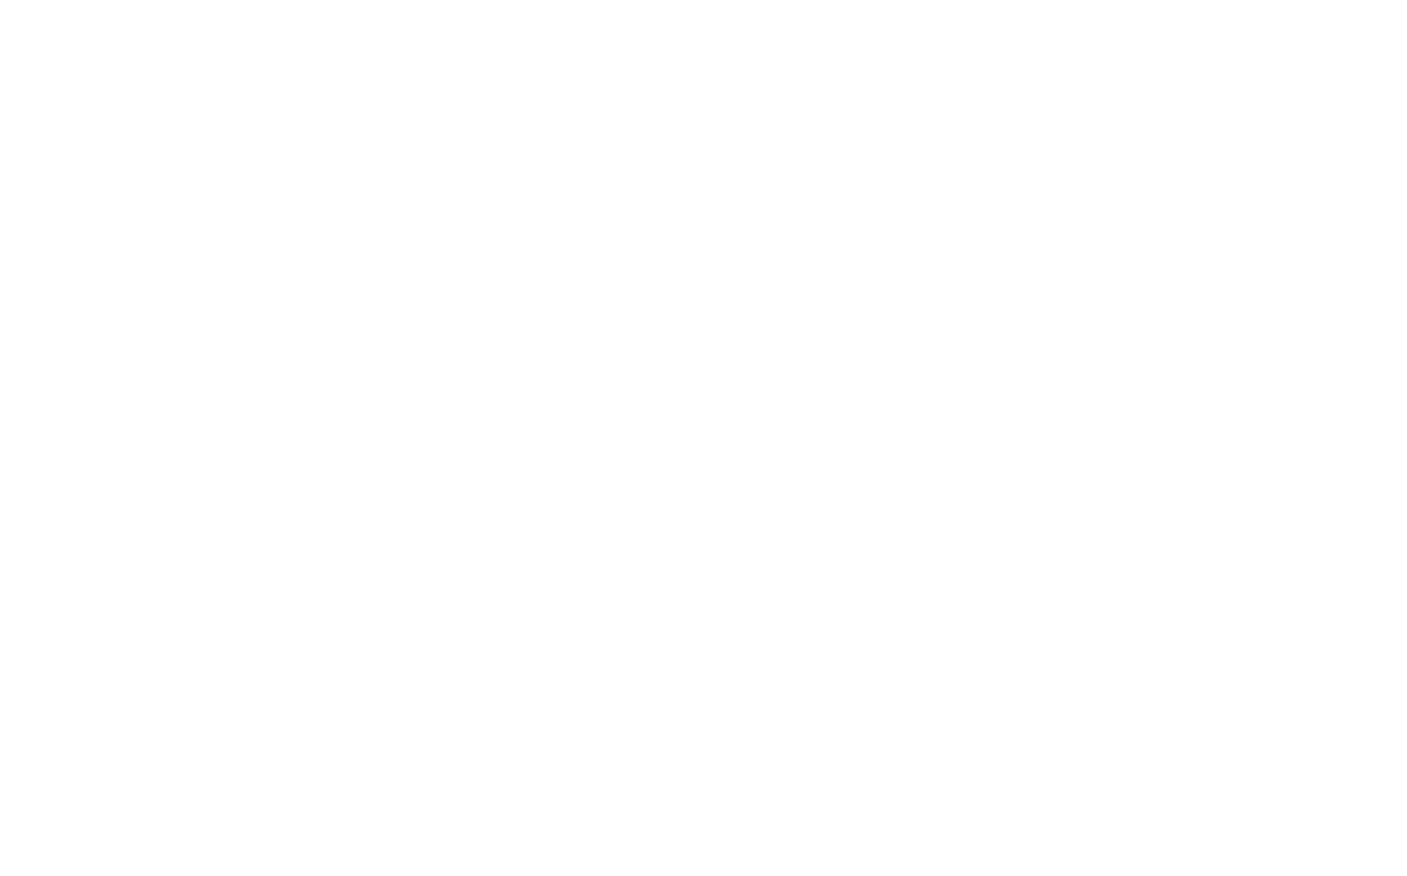 Tedd Wood Cabinetry